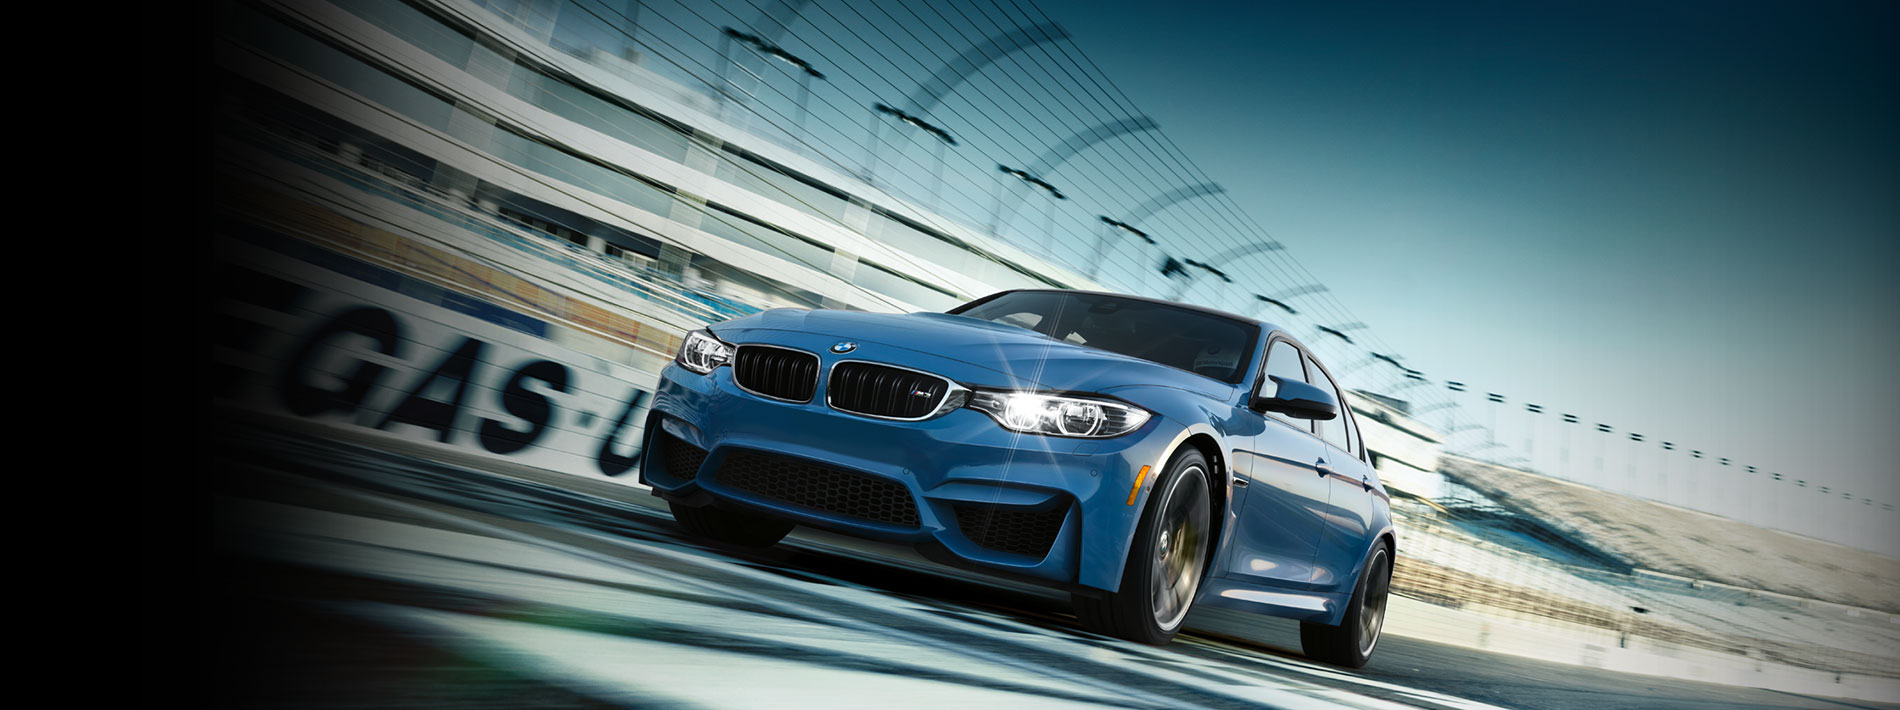 New BMW M Models For Sale Doylestown PA